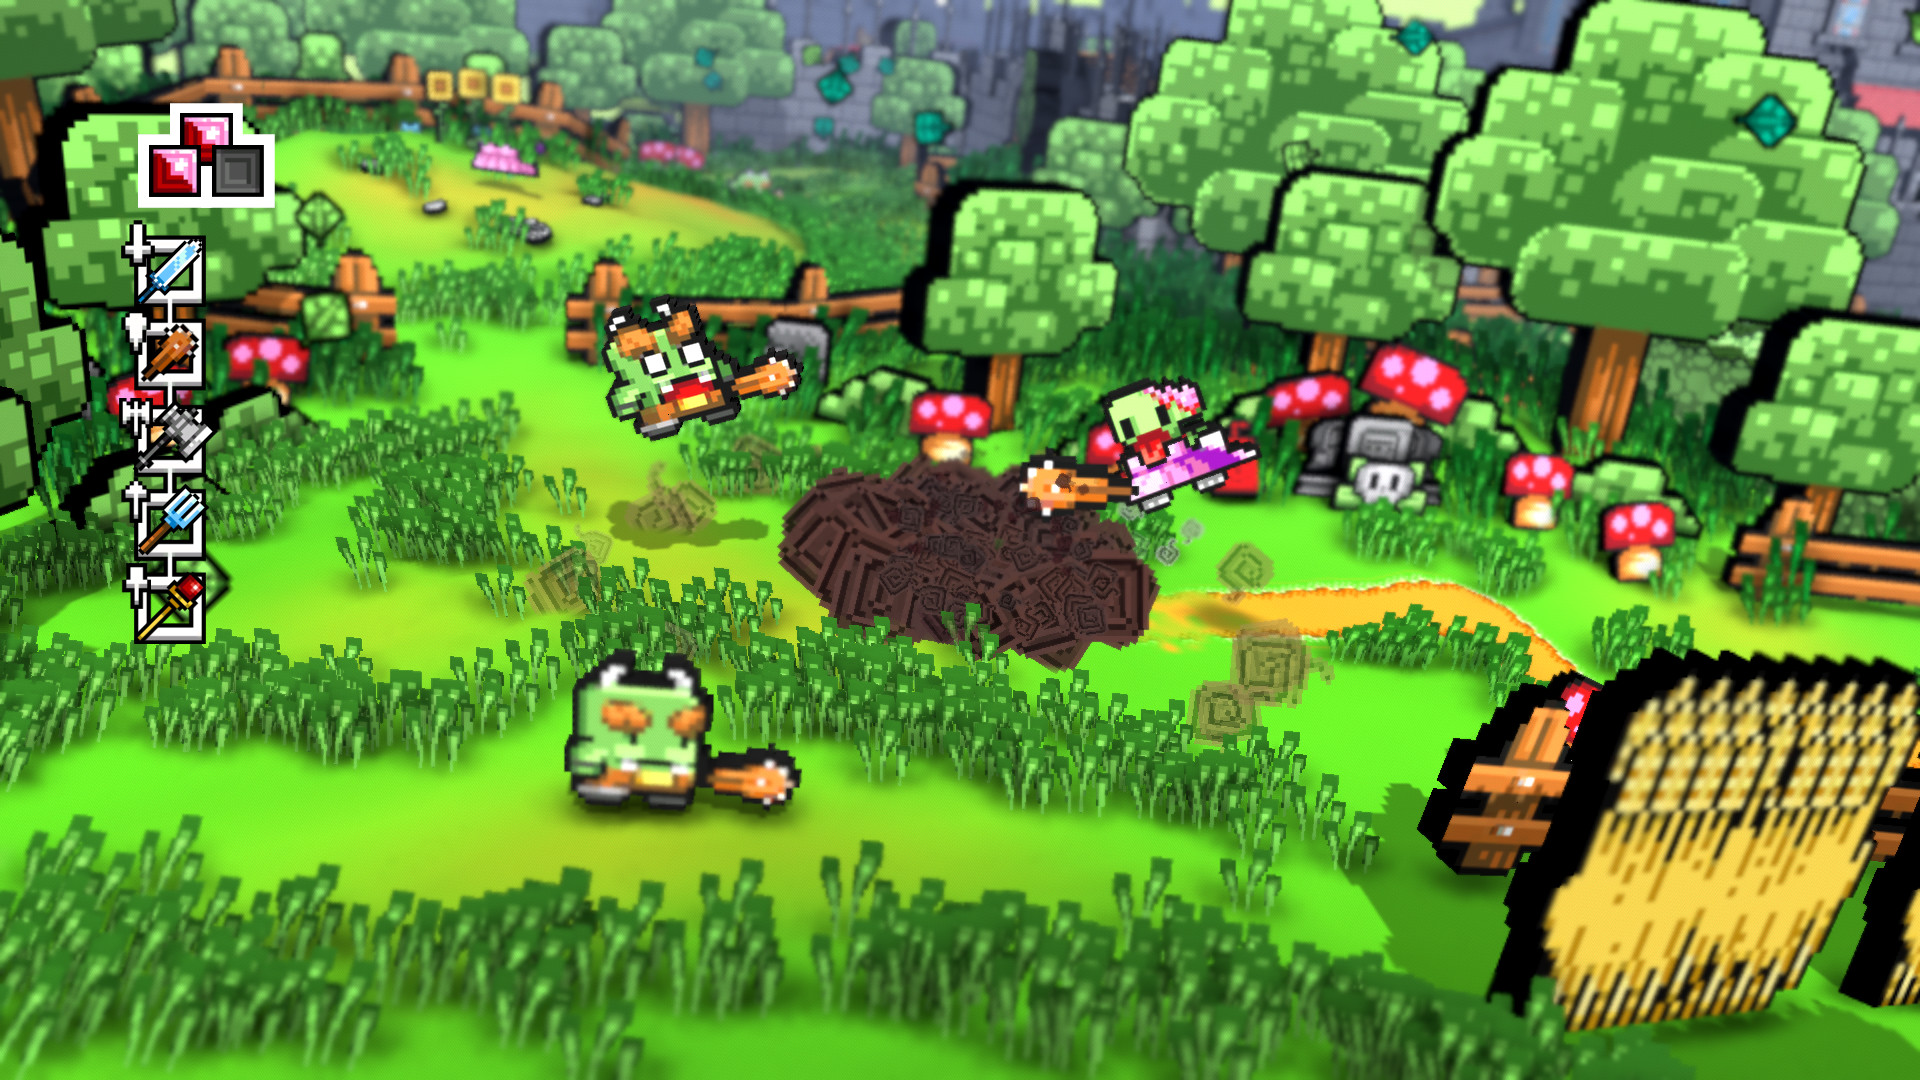 A look at the action-packed yet serene forest in Skellboy Refractured.